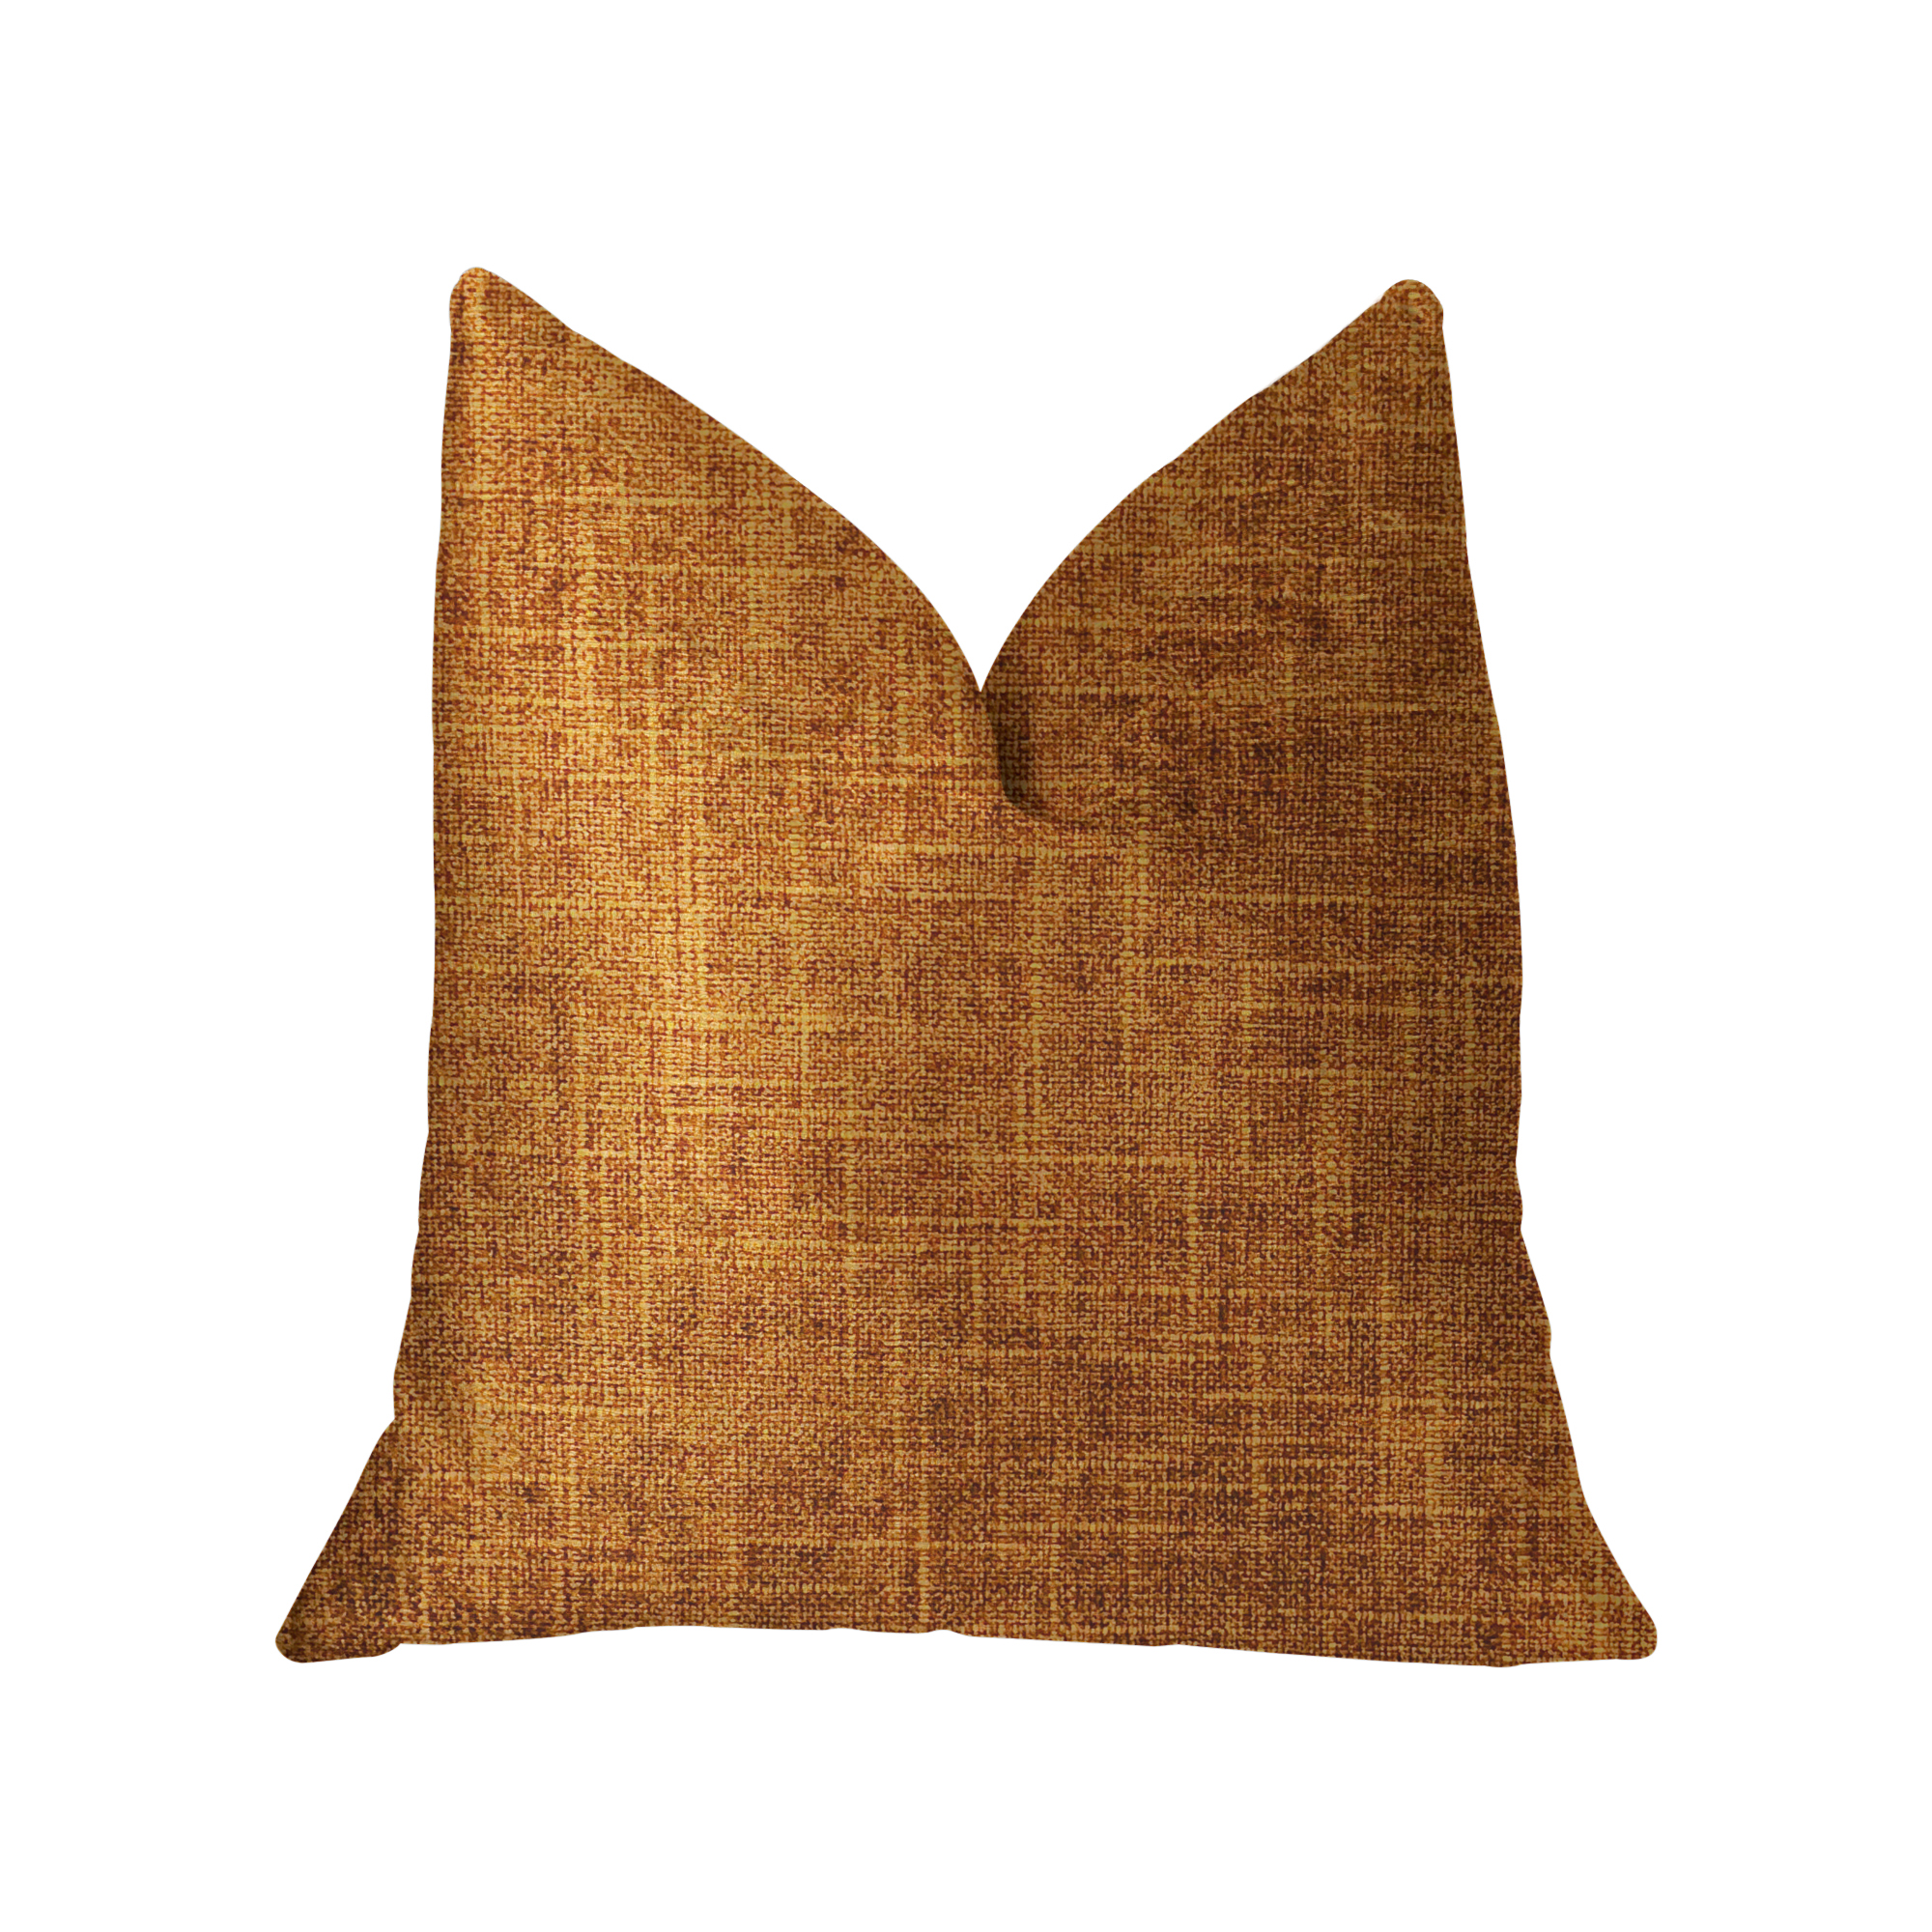 Plutus Marmalade Brown and Gold Luxury Throw Pillow